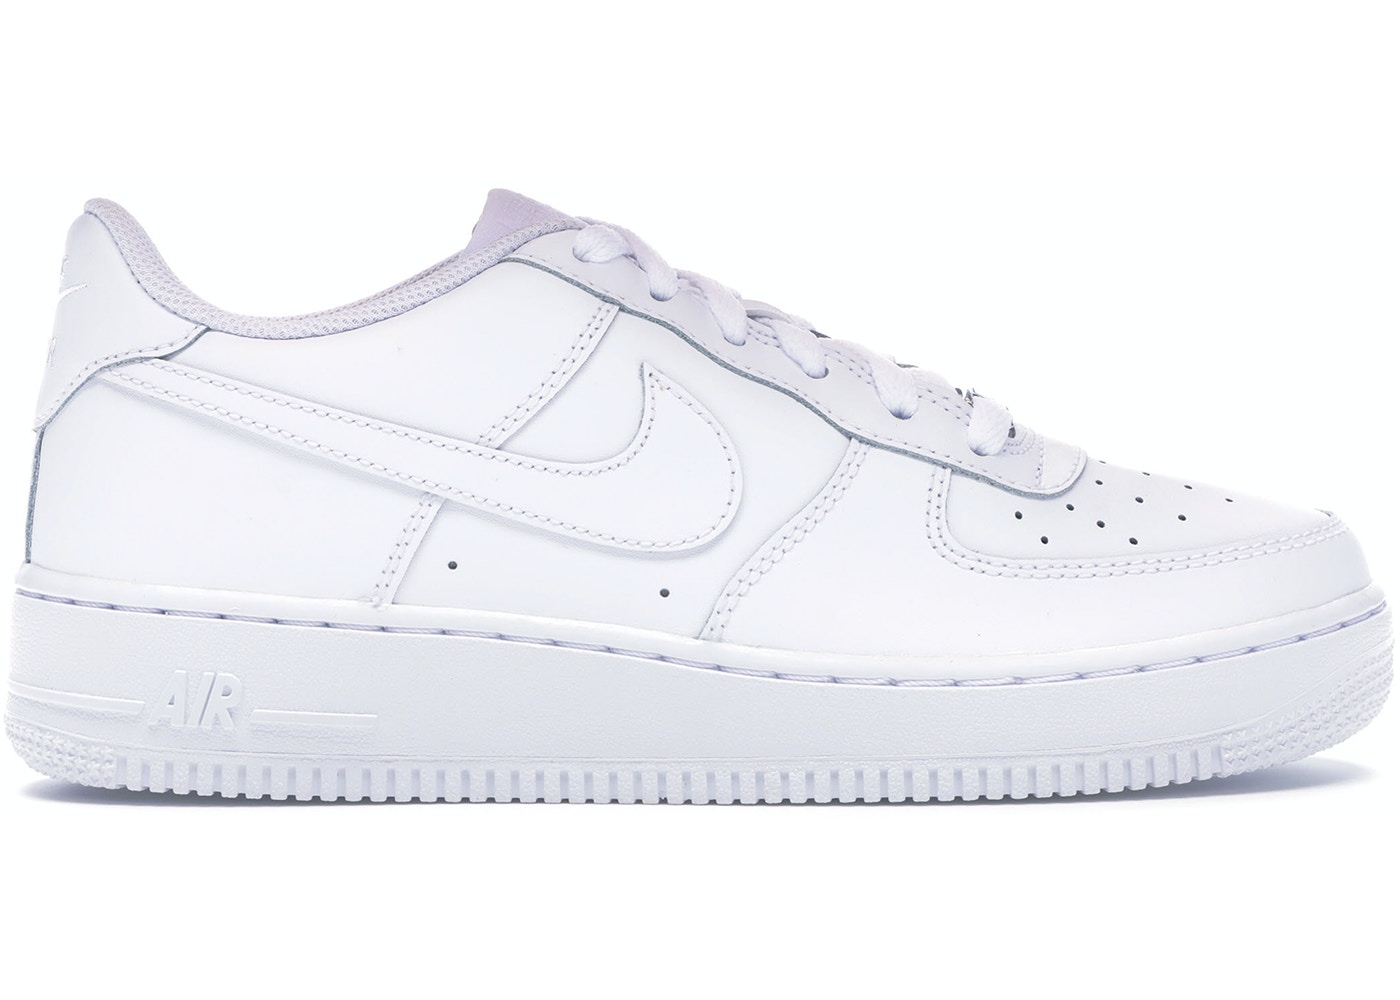 Nike Air Force 1 Low GS Nike Air Force 1 Low White 2014 (GS) - 314192-117